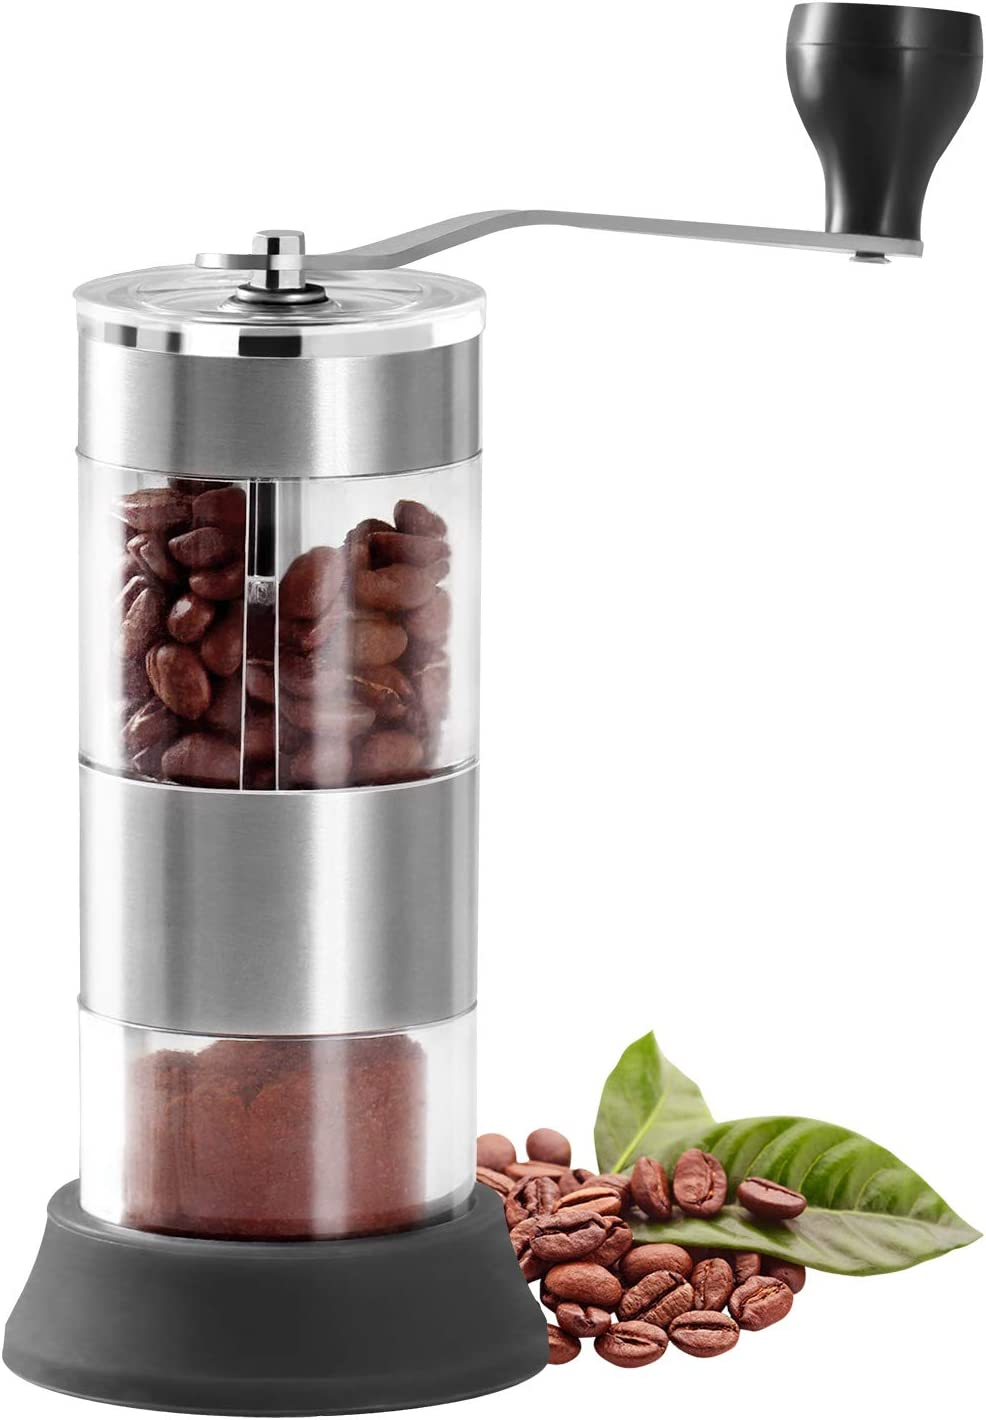 VEHHE Manual Coffee Cheap SALE Start Grinder Online limited product - with Portable Hand